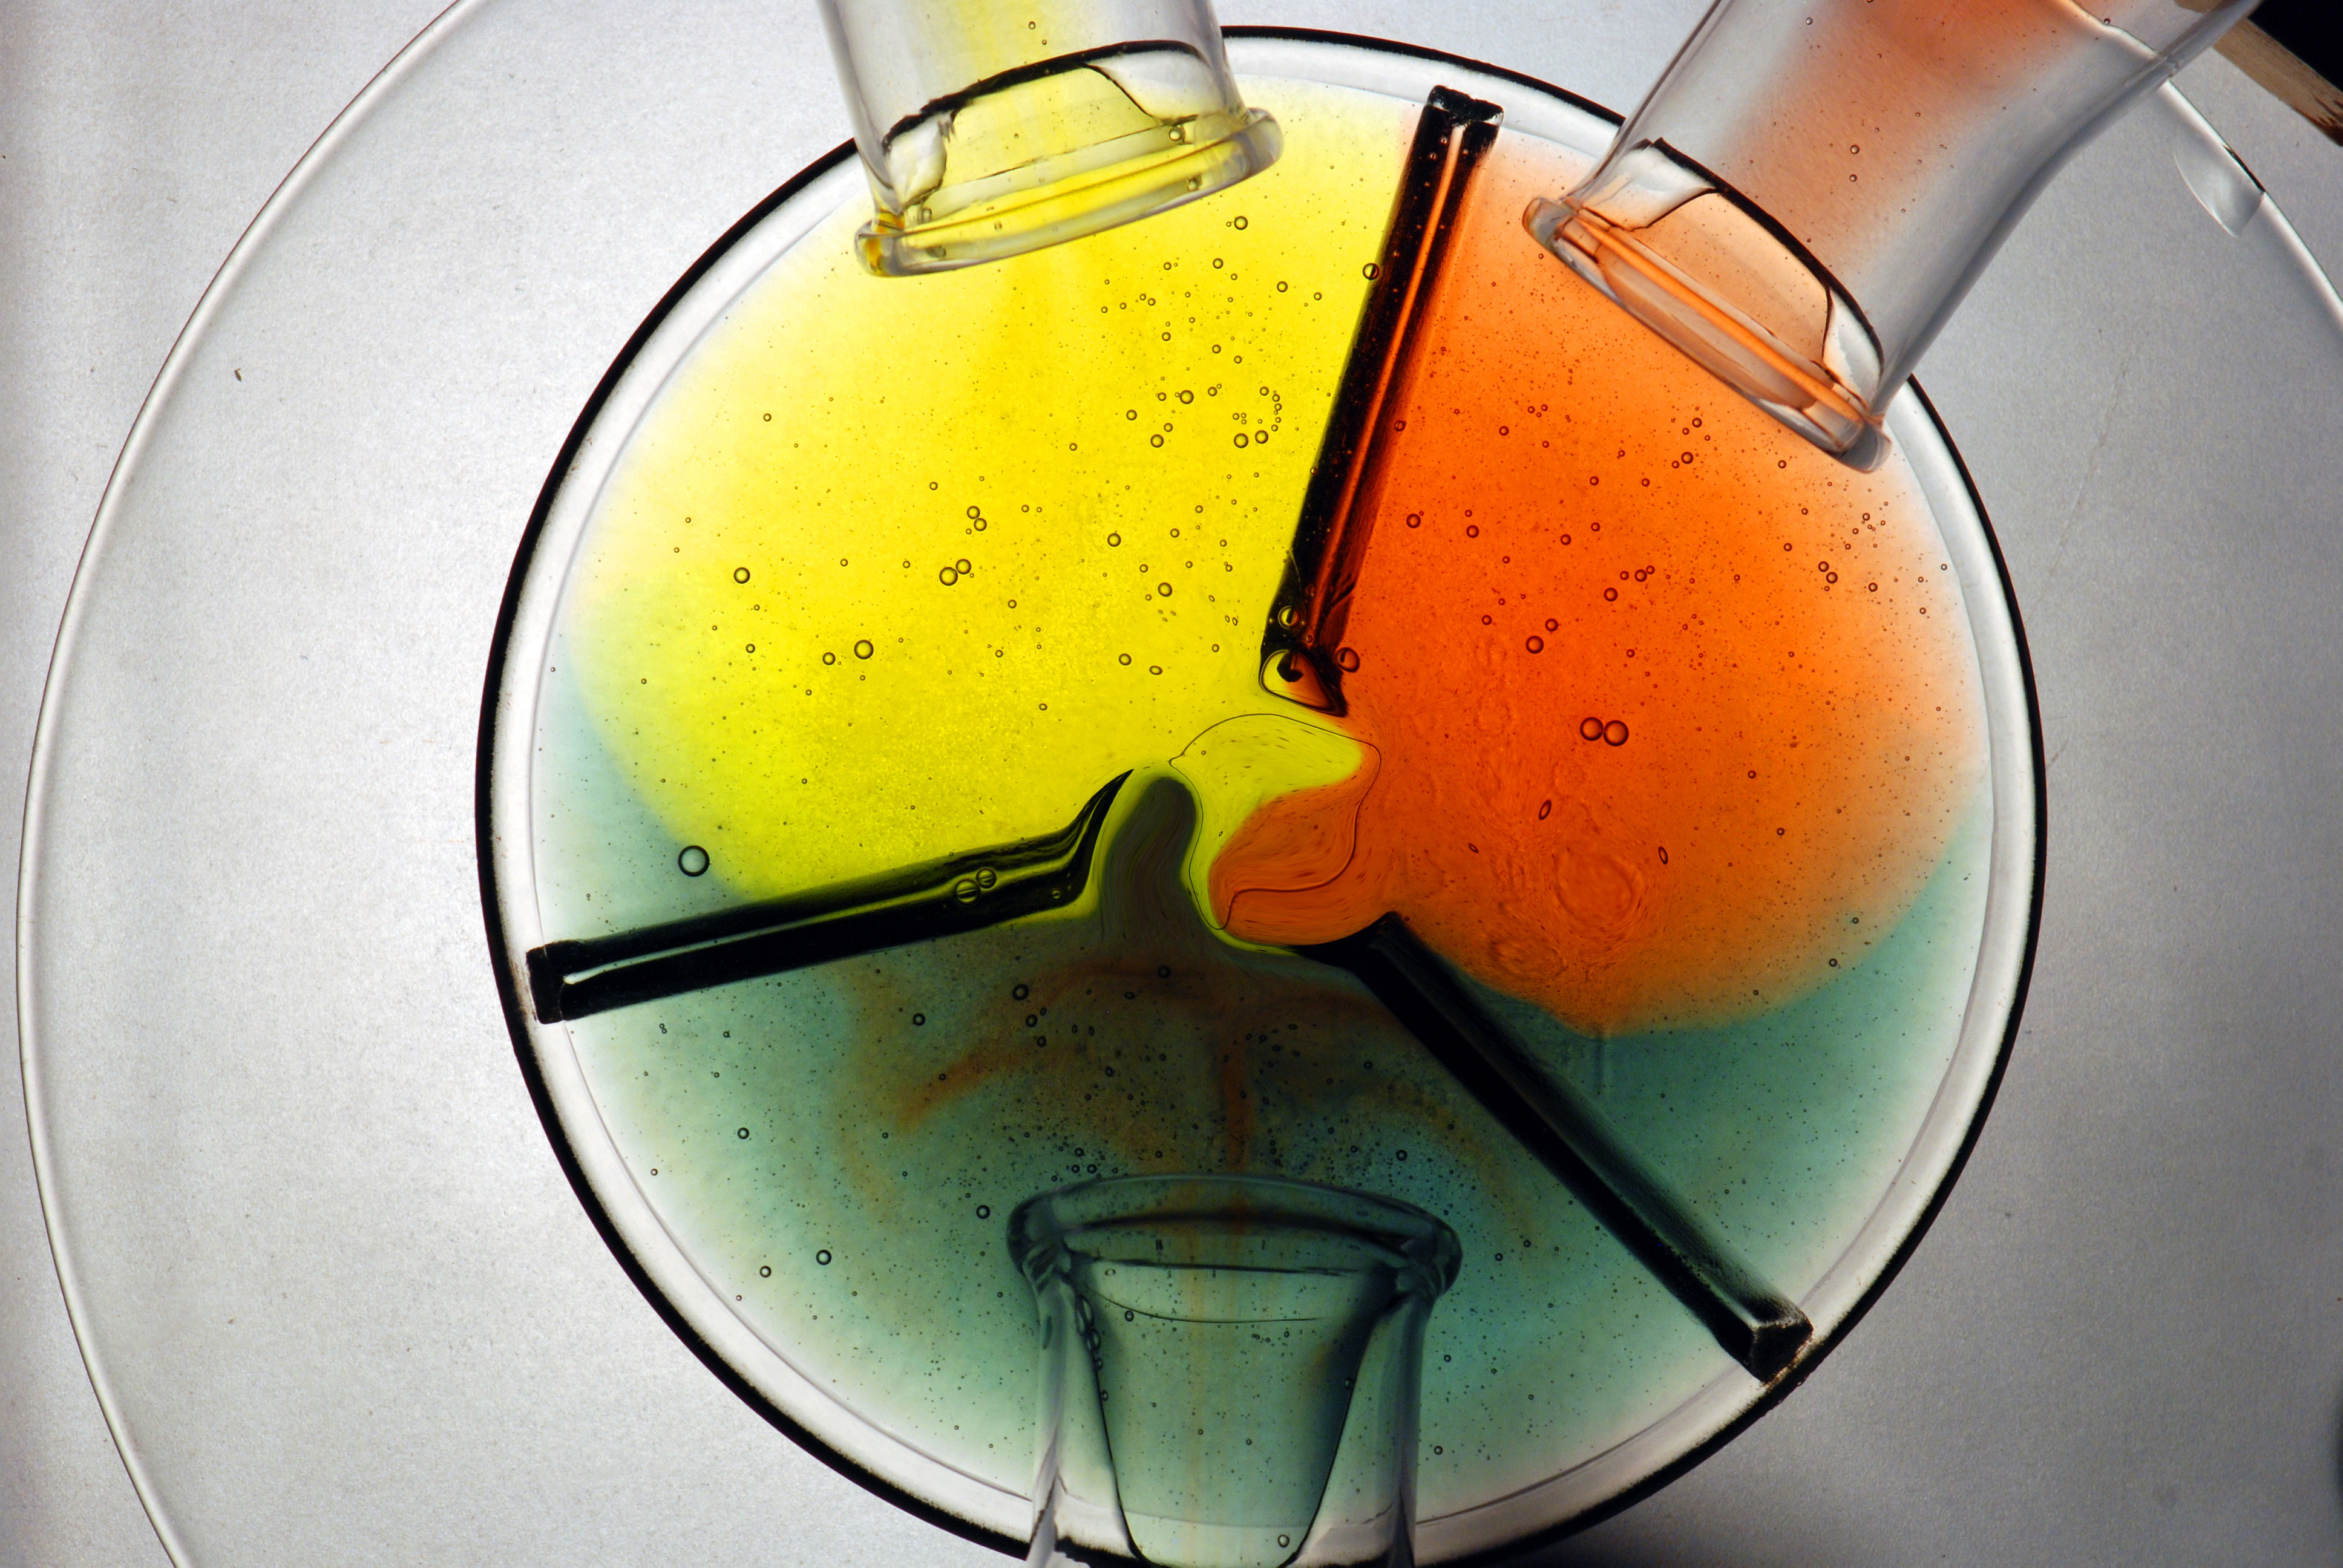 Mixing chemicals of different colors